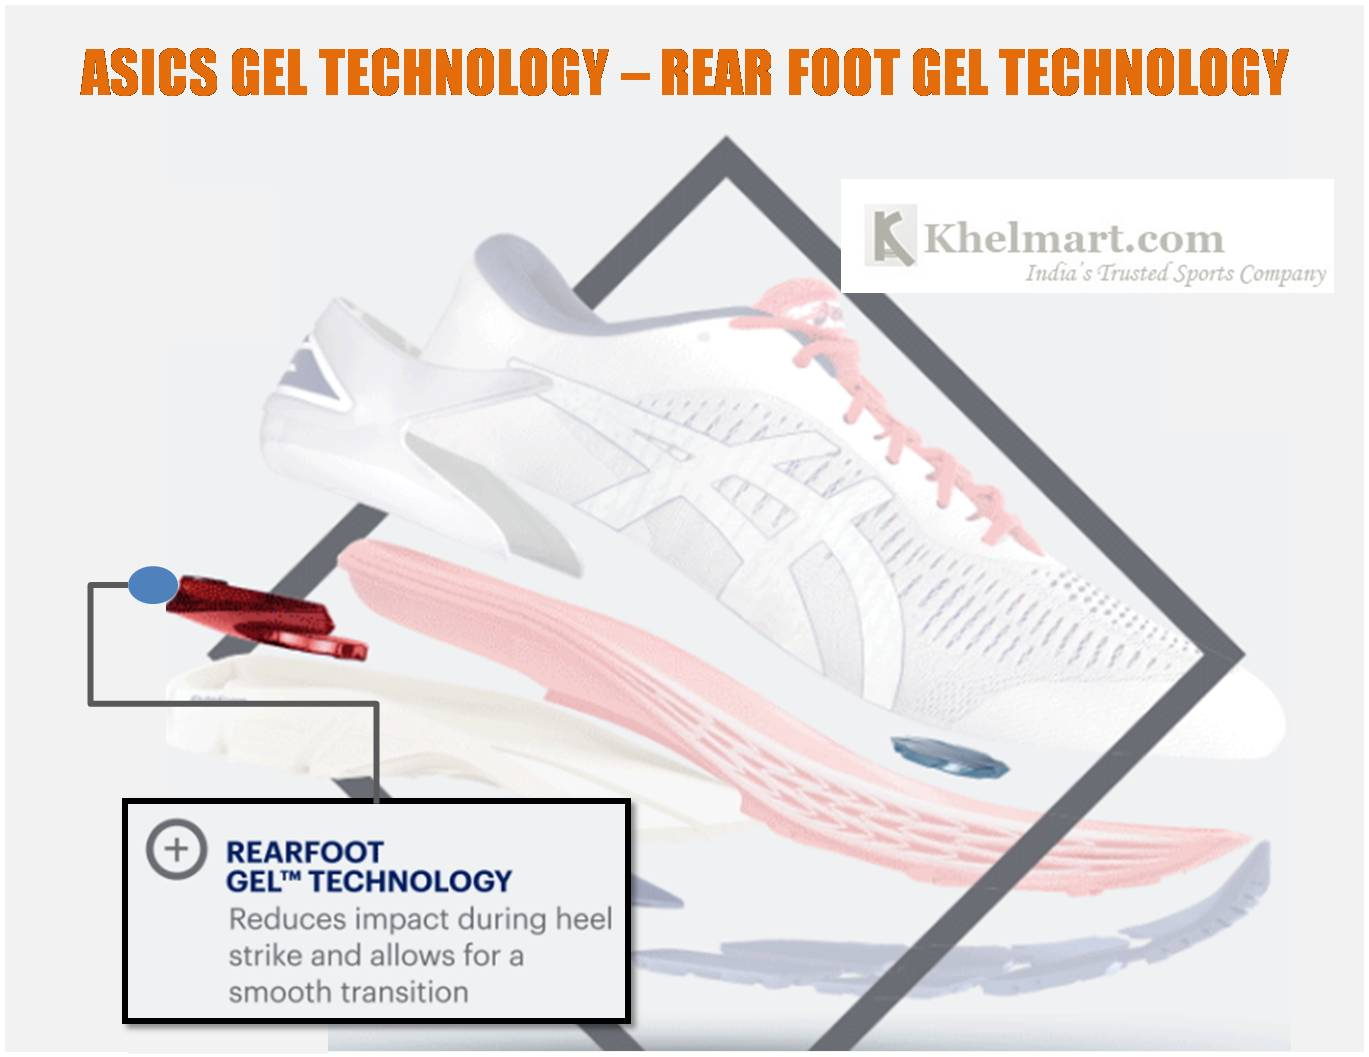 ASICS_GEL_TECHNOLOGY_REAR_FOOT_GEL_TECHNOLOGY_khelmart